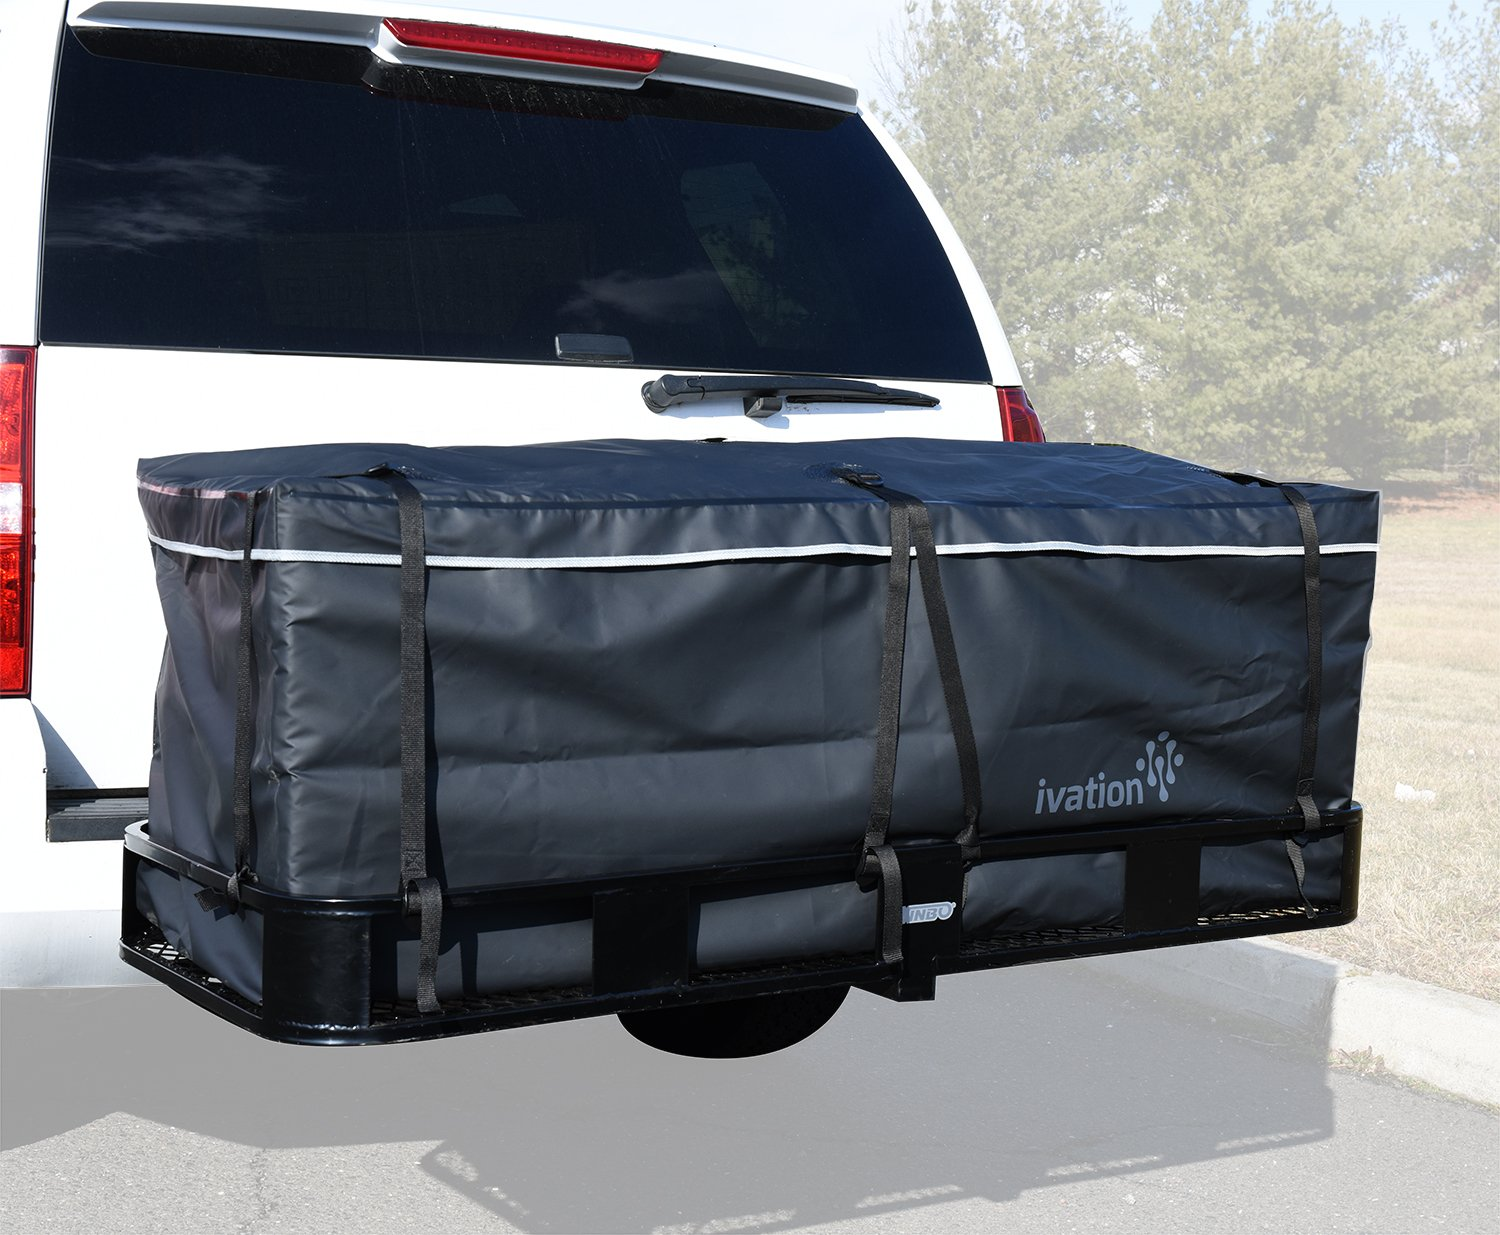 Hitch bag - 100% Waterproof Large Hitch Tray Cargo carrier bag 60'' x 24'' x 24'' (20 Cu Ft) by Ivation